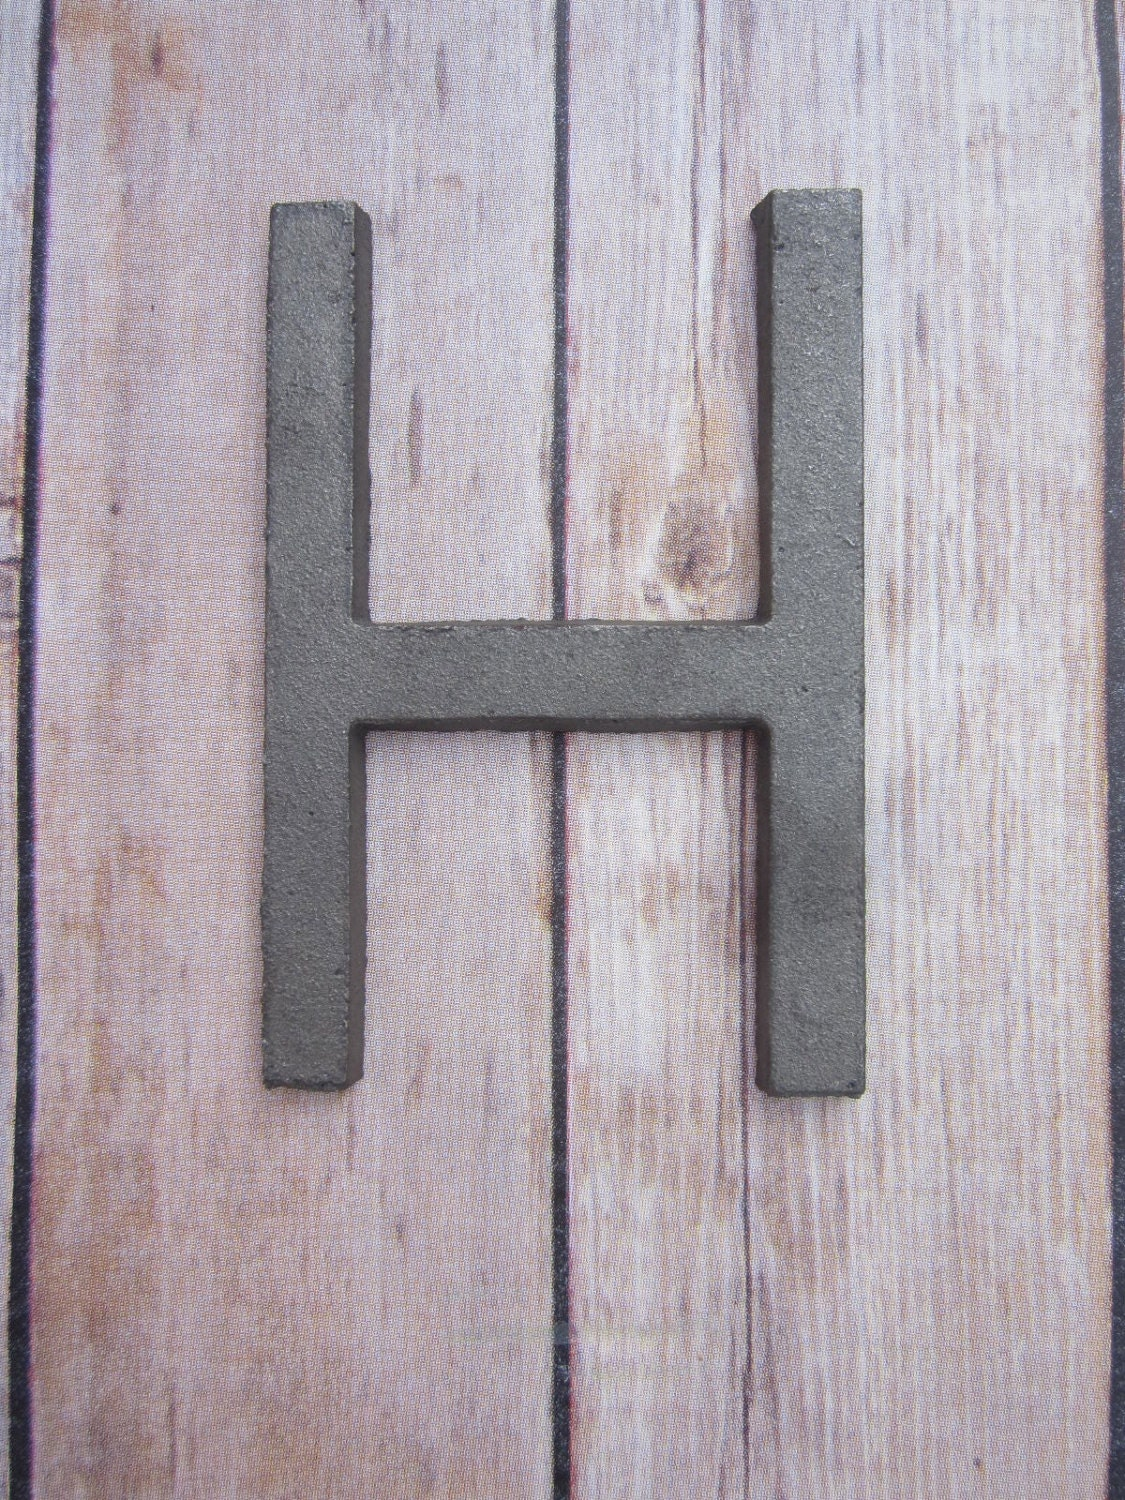 metal letter wall art cast iron metal letter wall decor vintage style you 23622 | il fullxfull.687558713 8hlu